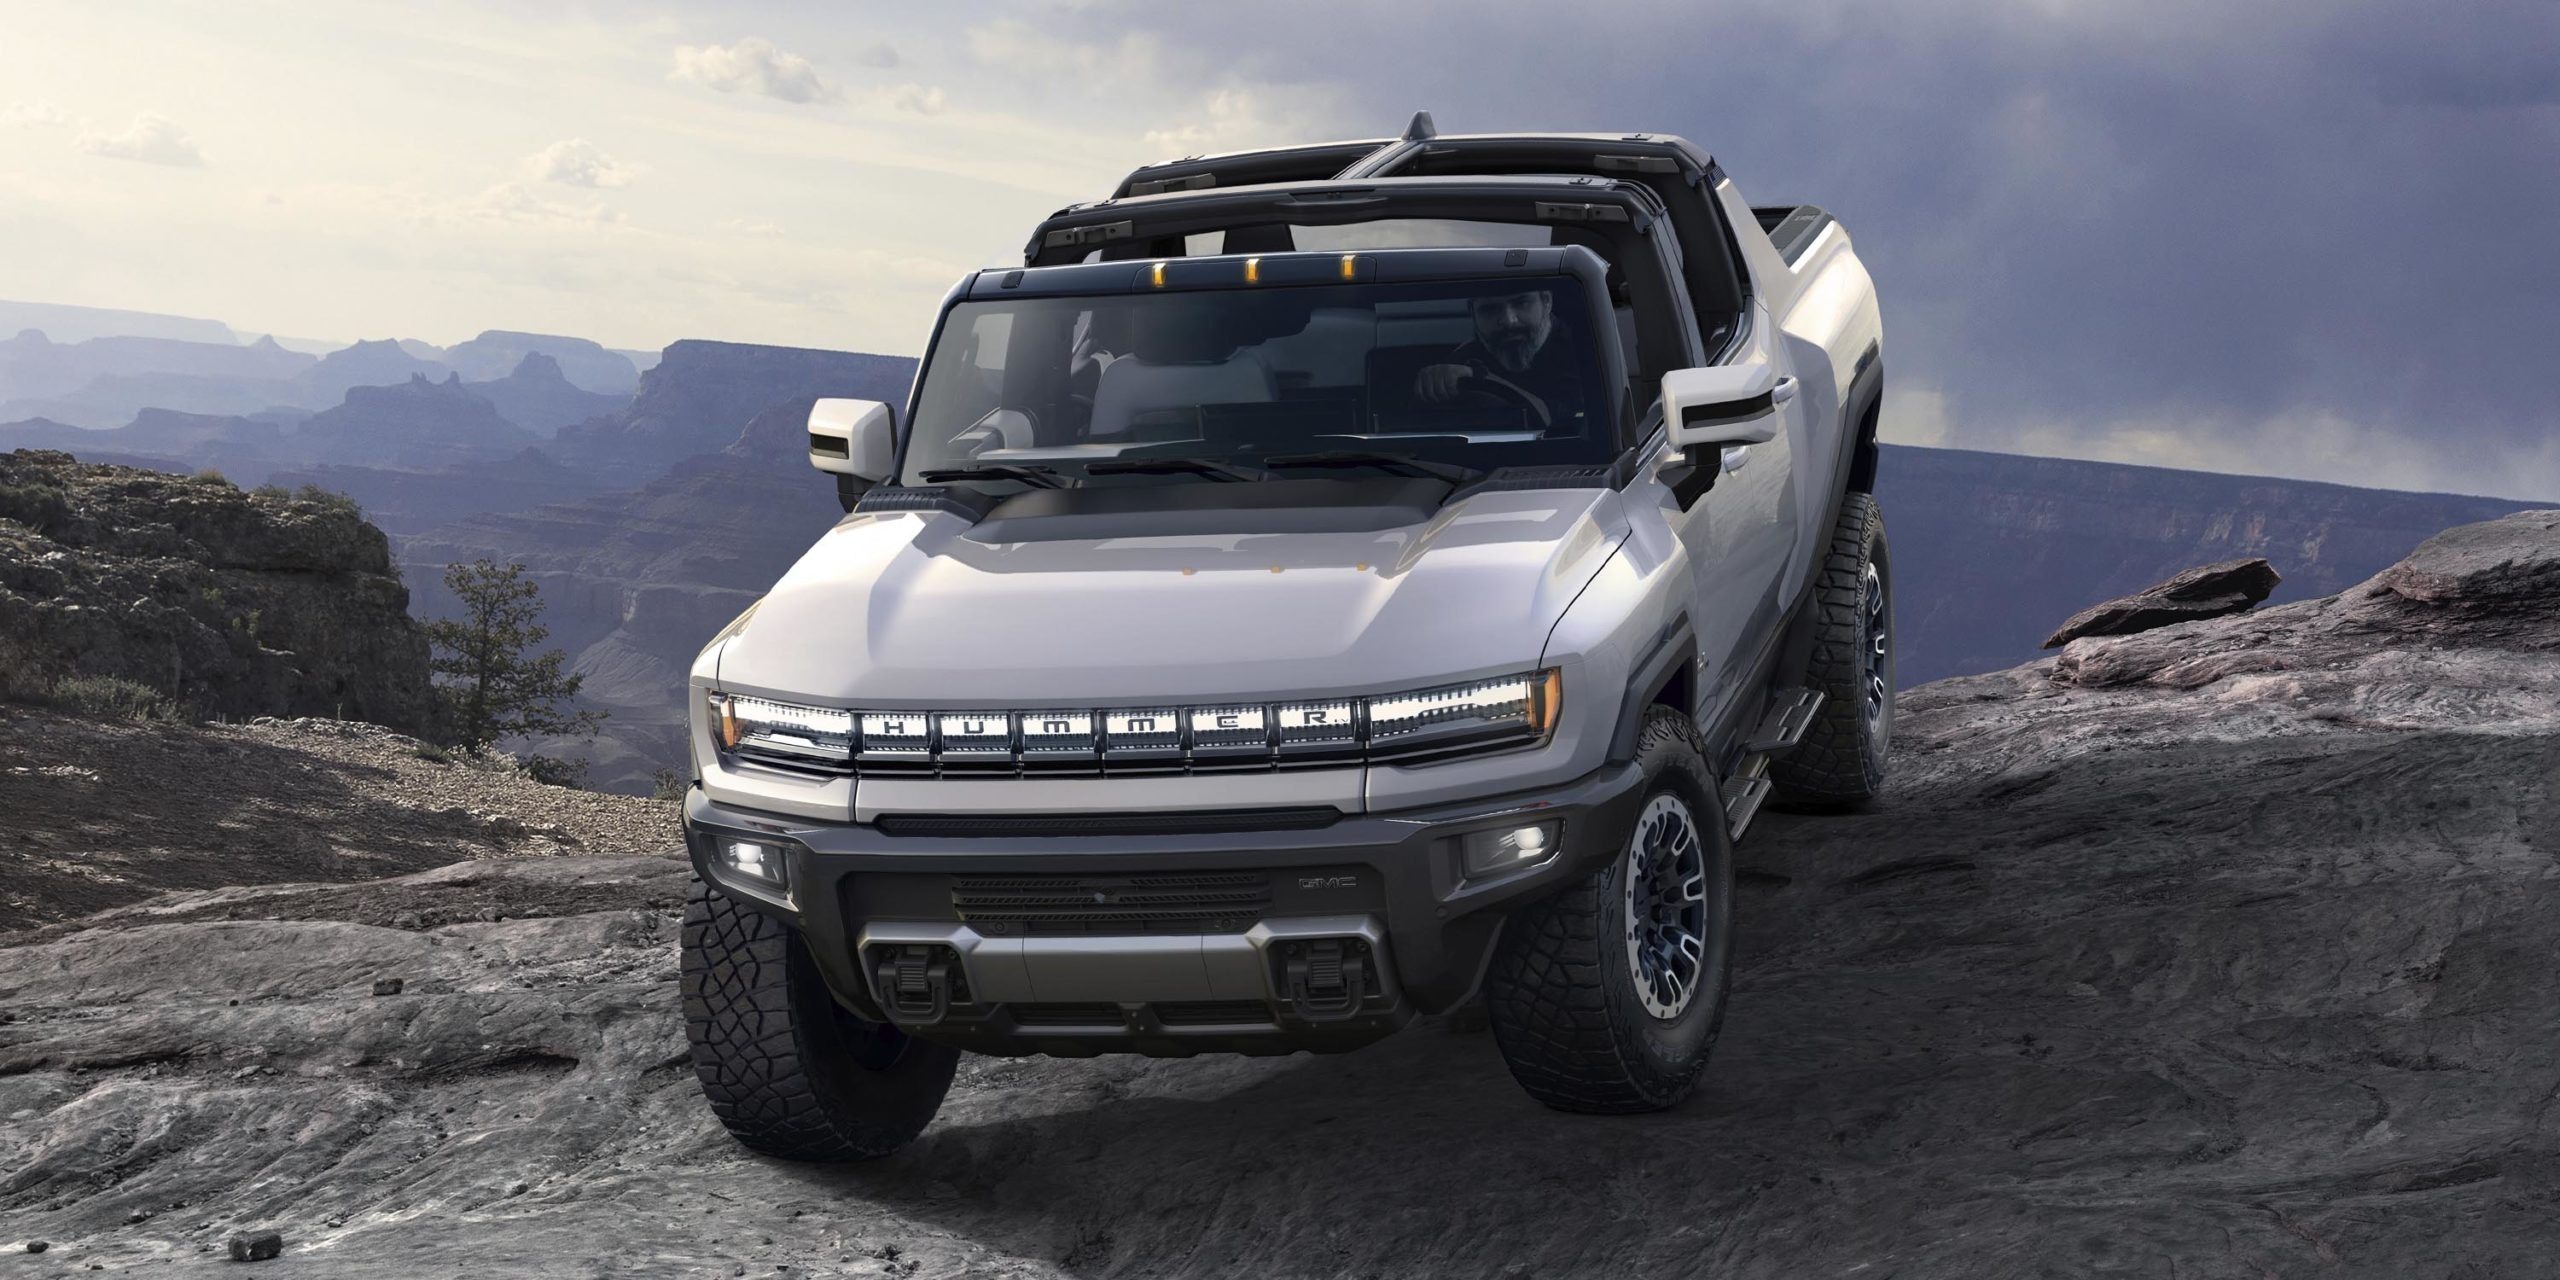 2021 Hummer Ev 1000hp Electric Truck Revealed Price Specs And Release Date Carwow